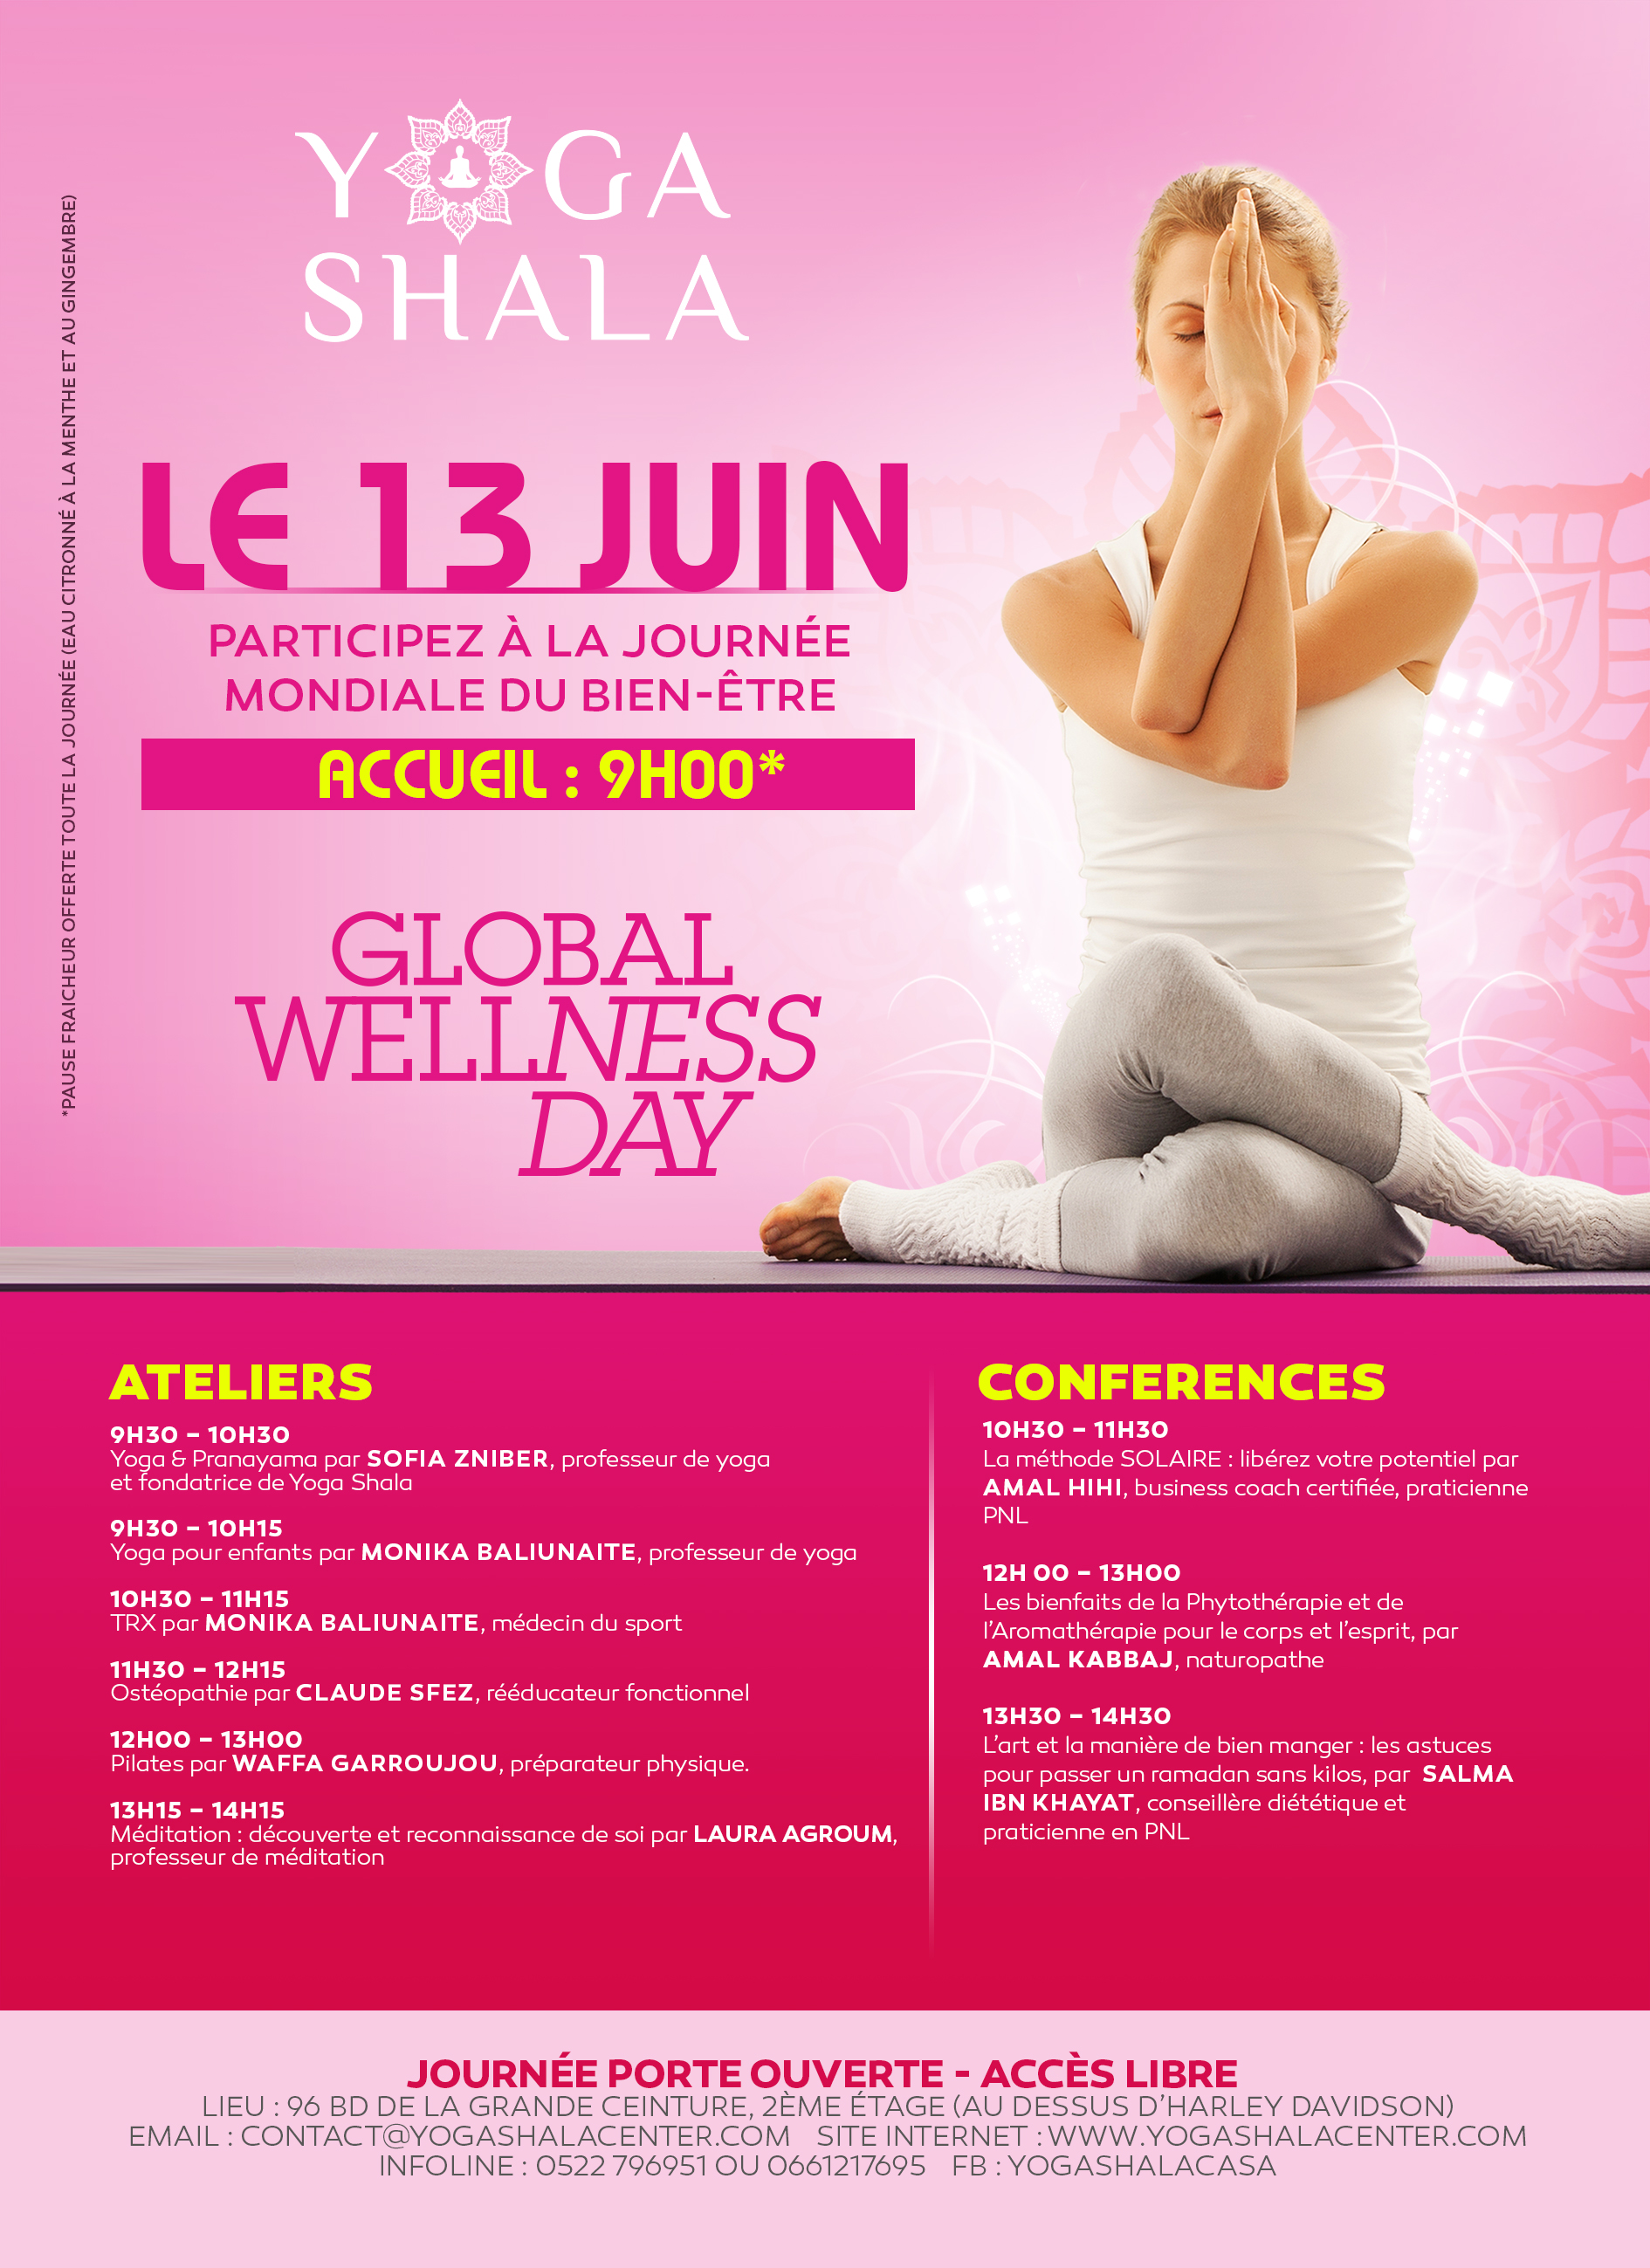 Global Wellness Day – Journée Mondiale du Bien-Etre